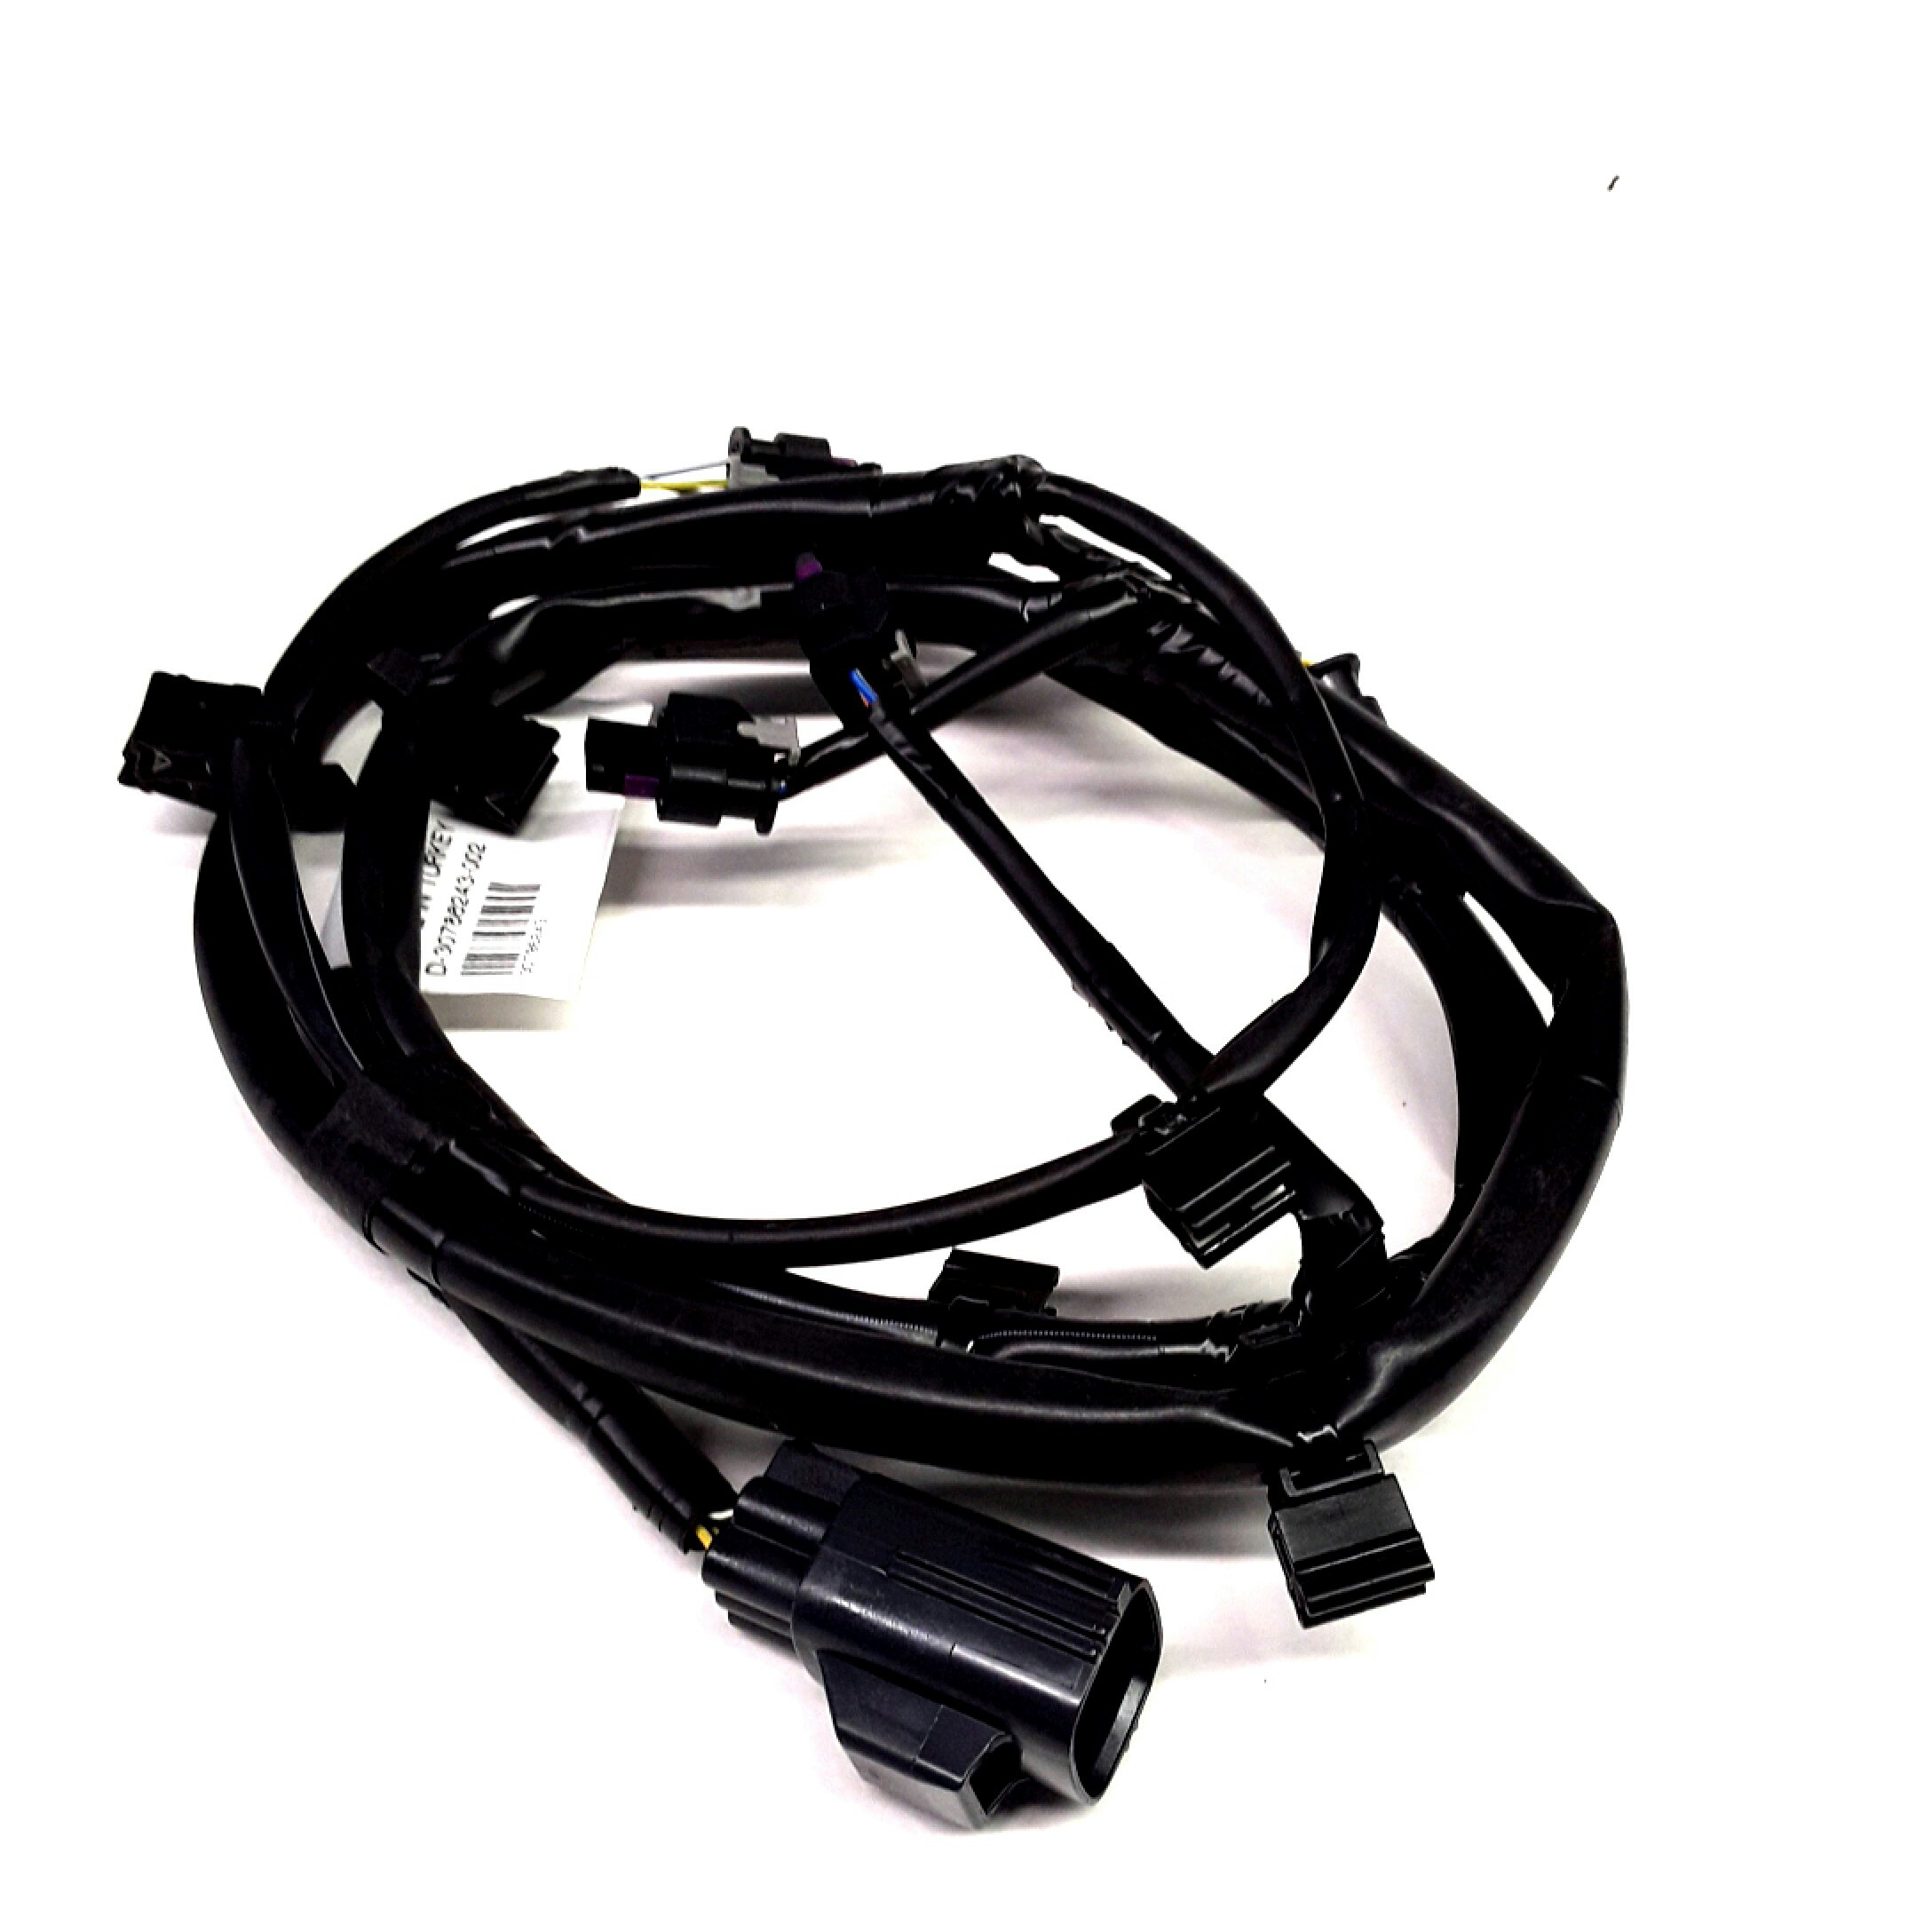 Volvo S80 Wiring Harness  Cable Harness Bumper  Parking